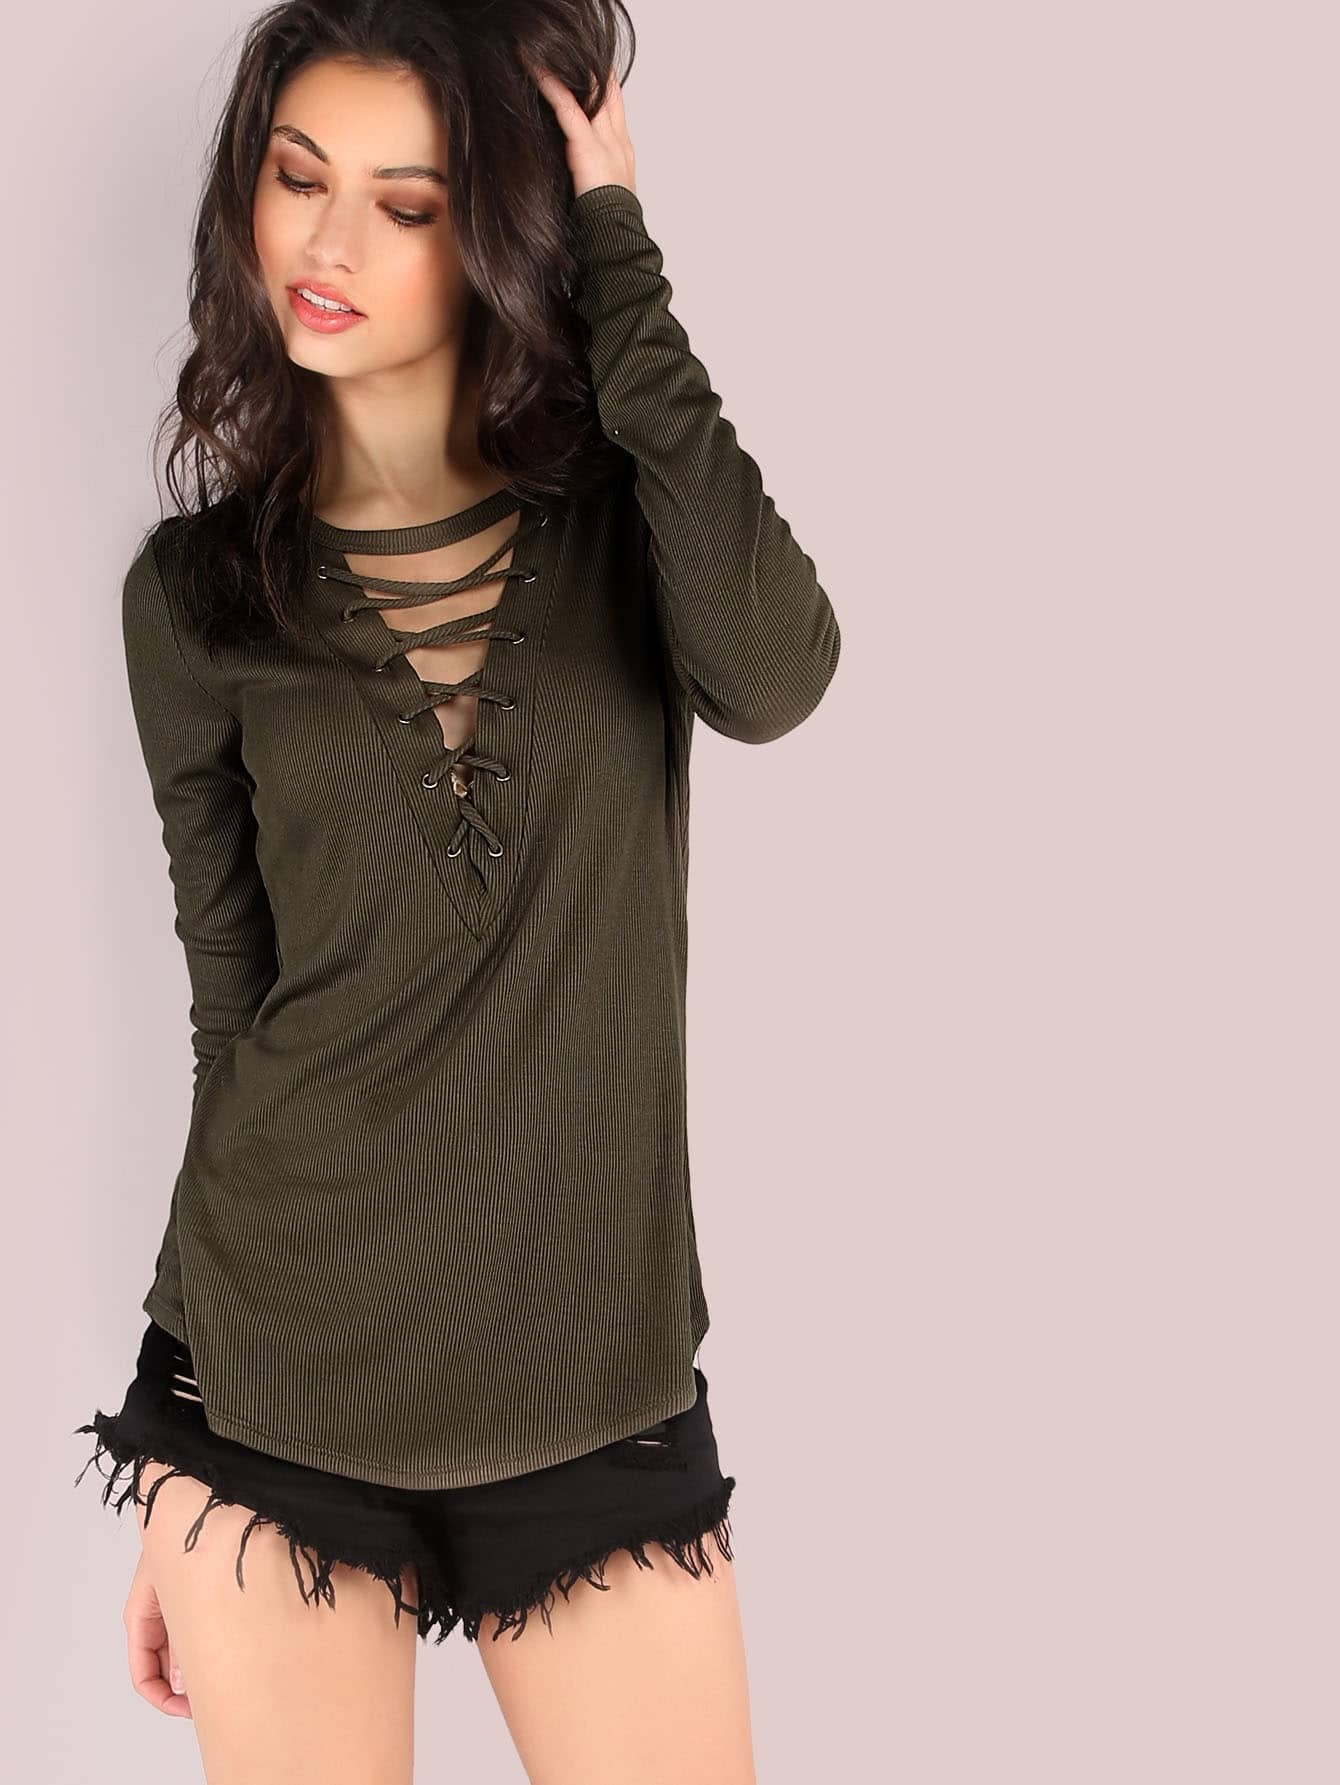 Deep V Lace Up Long Sleeve Ribbed Top OLIVE mmctop-m3116t-olive